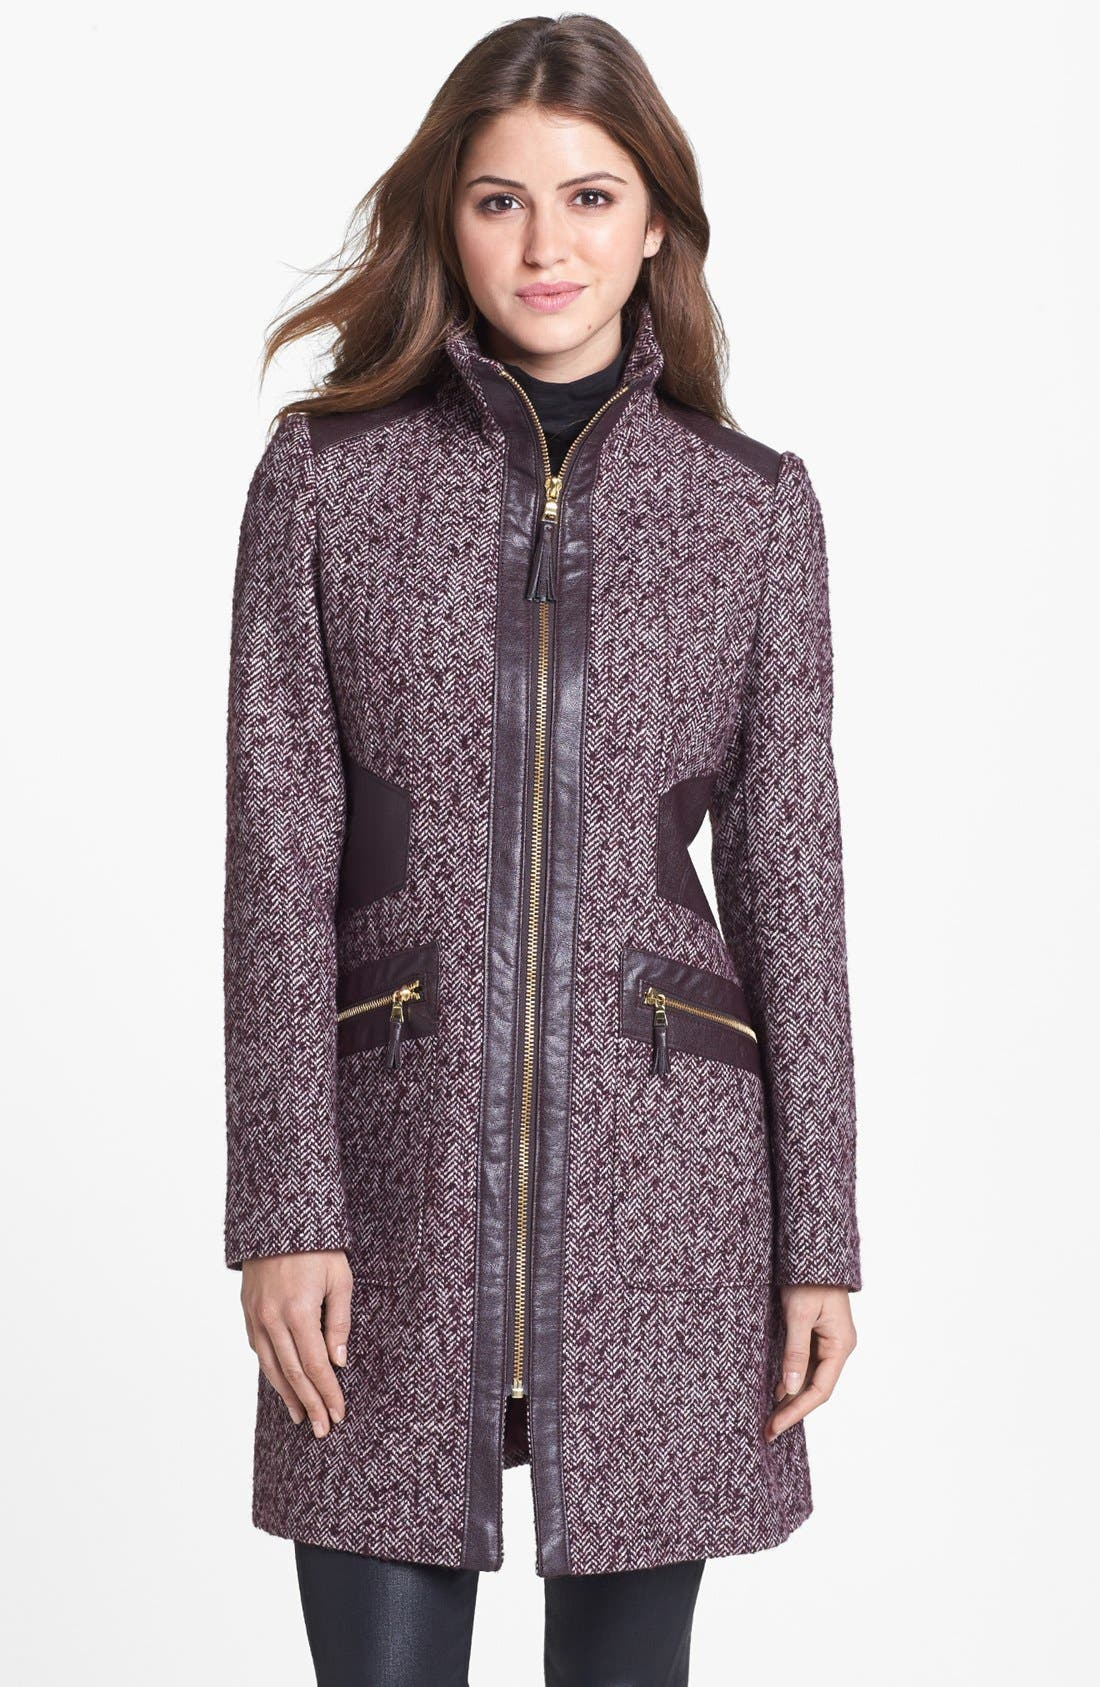 Main Image - Via Spiga Faux Leather Trim Herringbone Tweed Coat